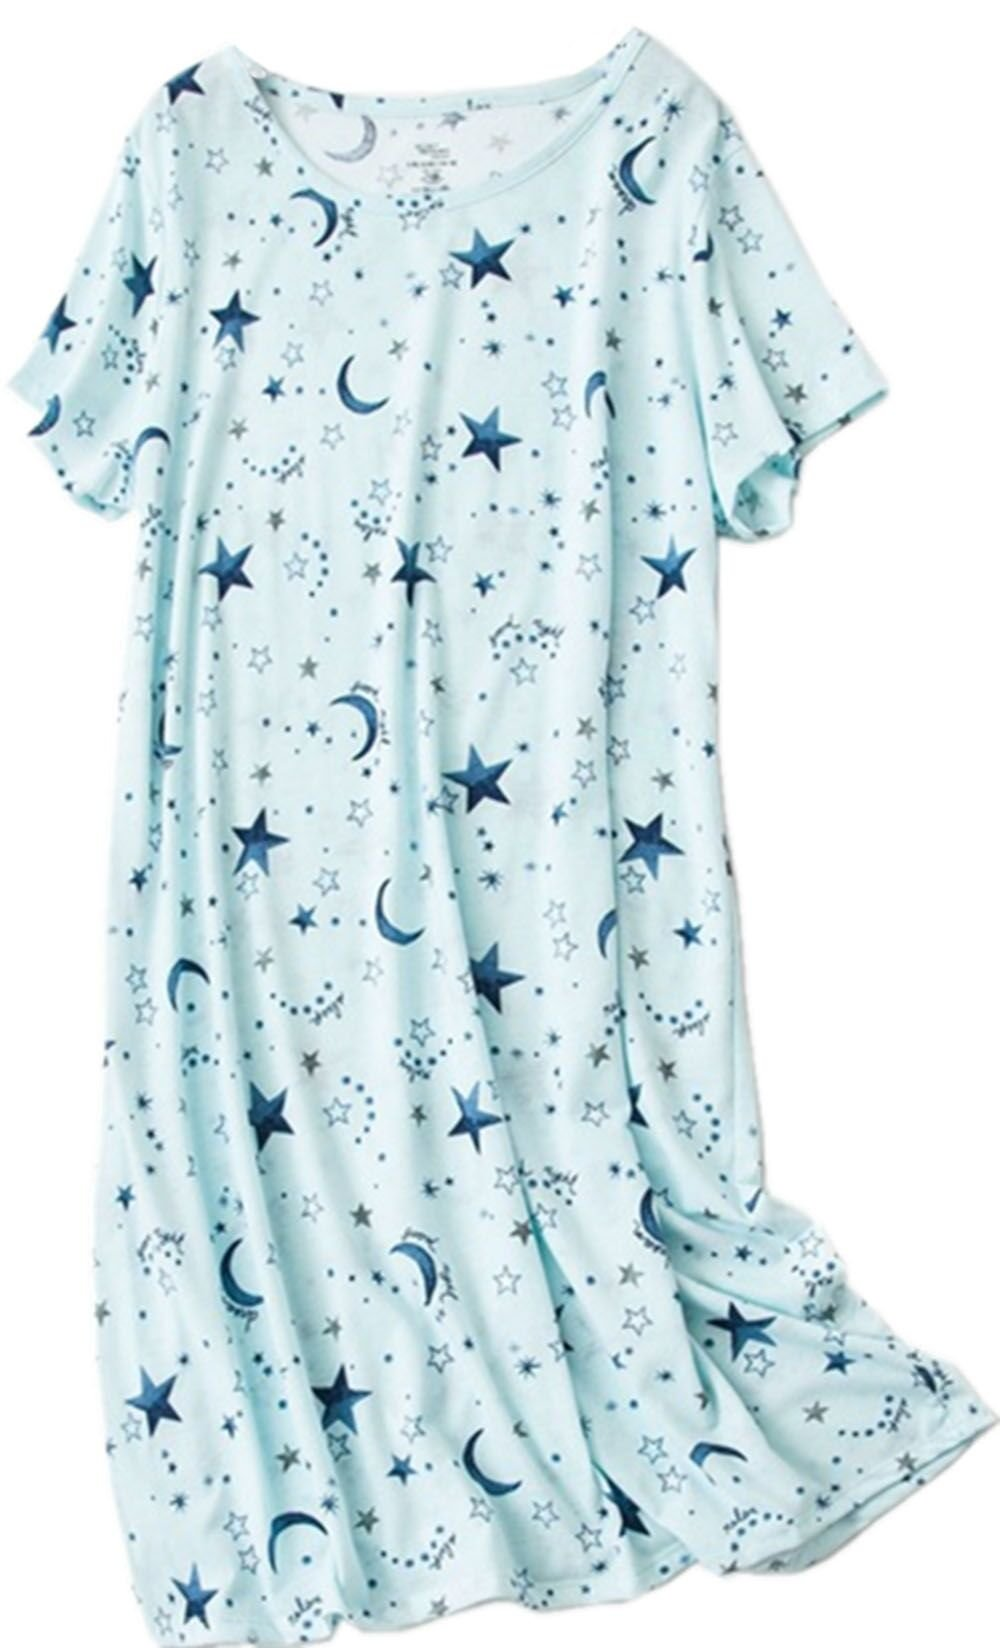 Amoy-Baby Women's Cotton Blend Green Floral Nightgown Casual Nights XTSY001-Blue Star-2XL